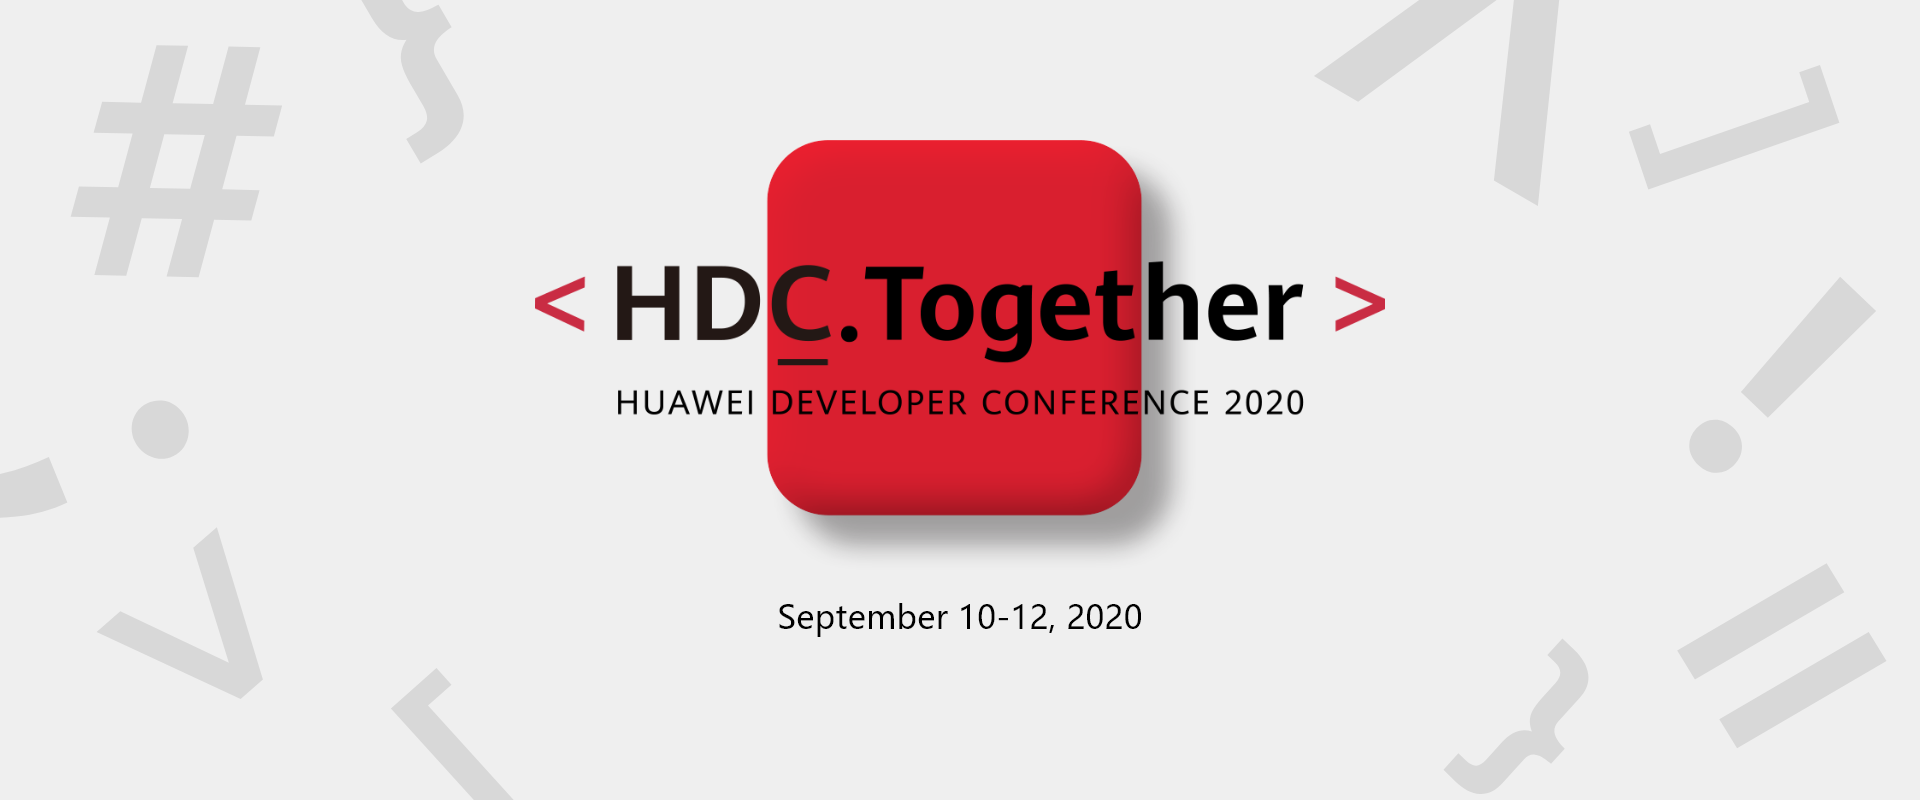 HDC.together01